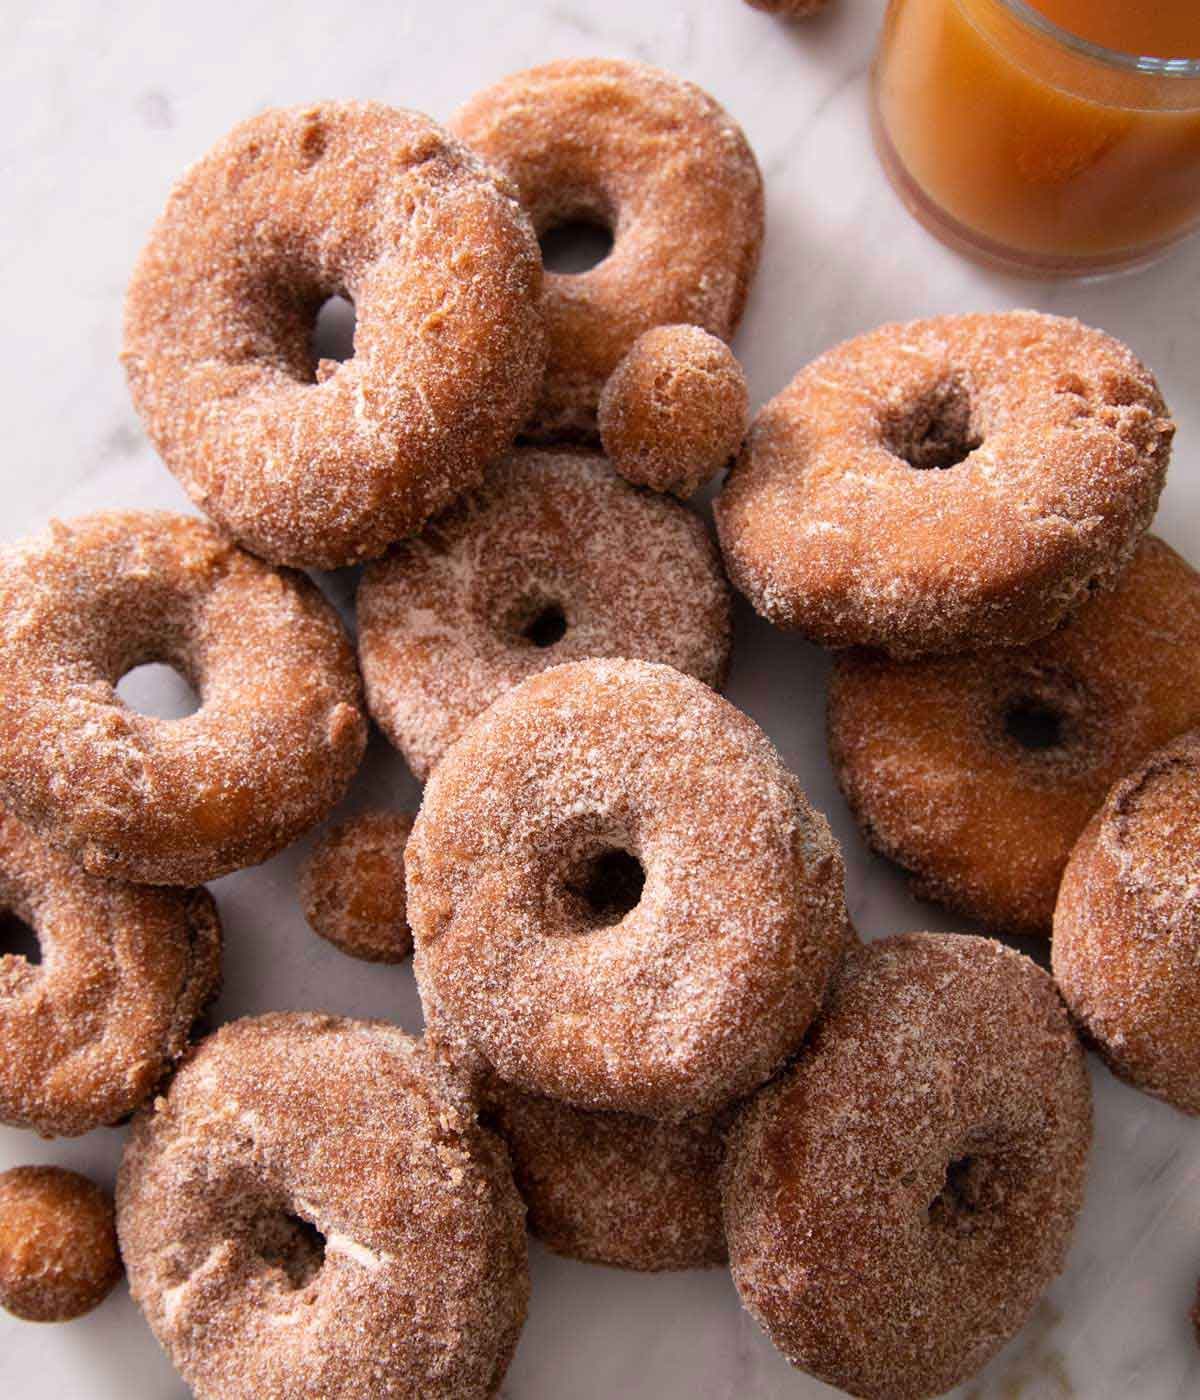 Multiple apple cider donuts piled on top of each other on a marble countertop.